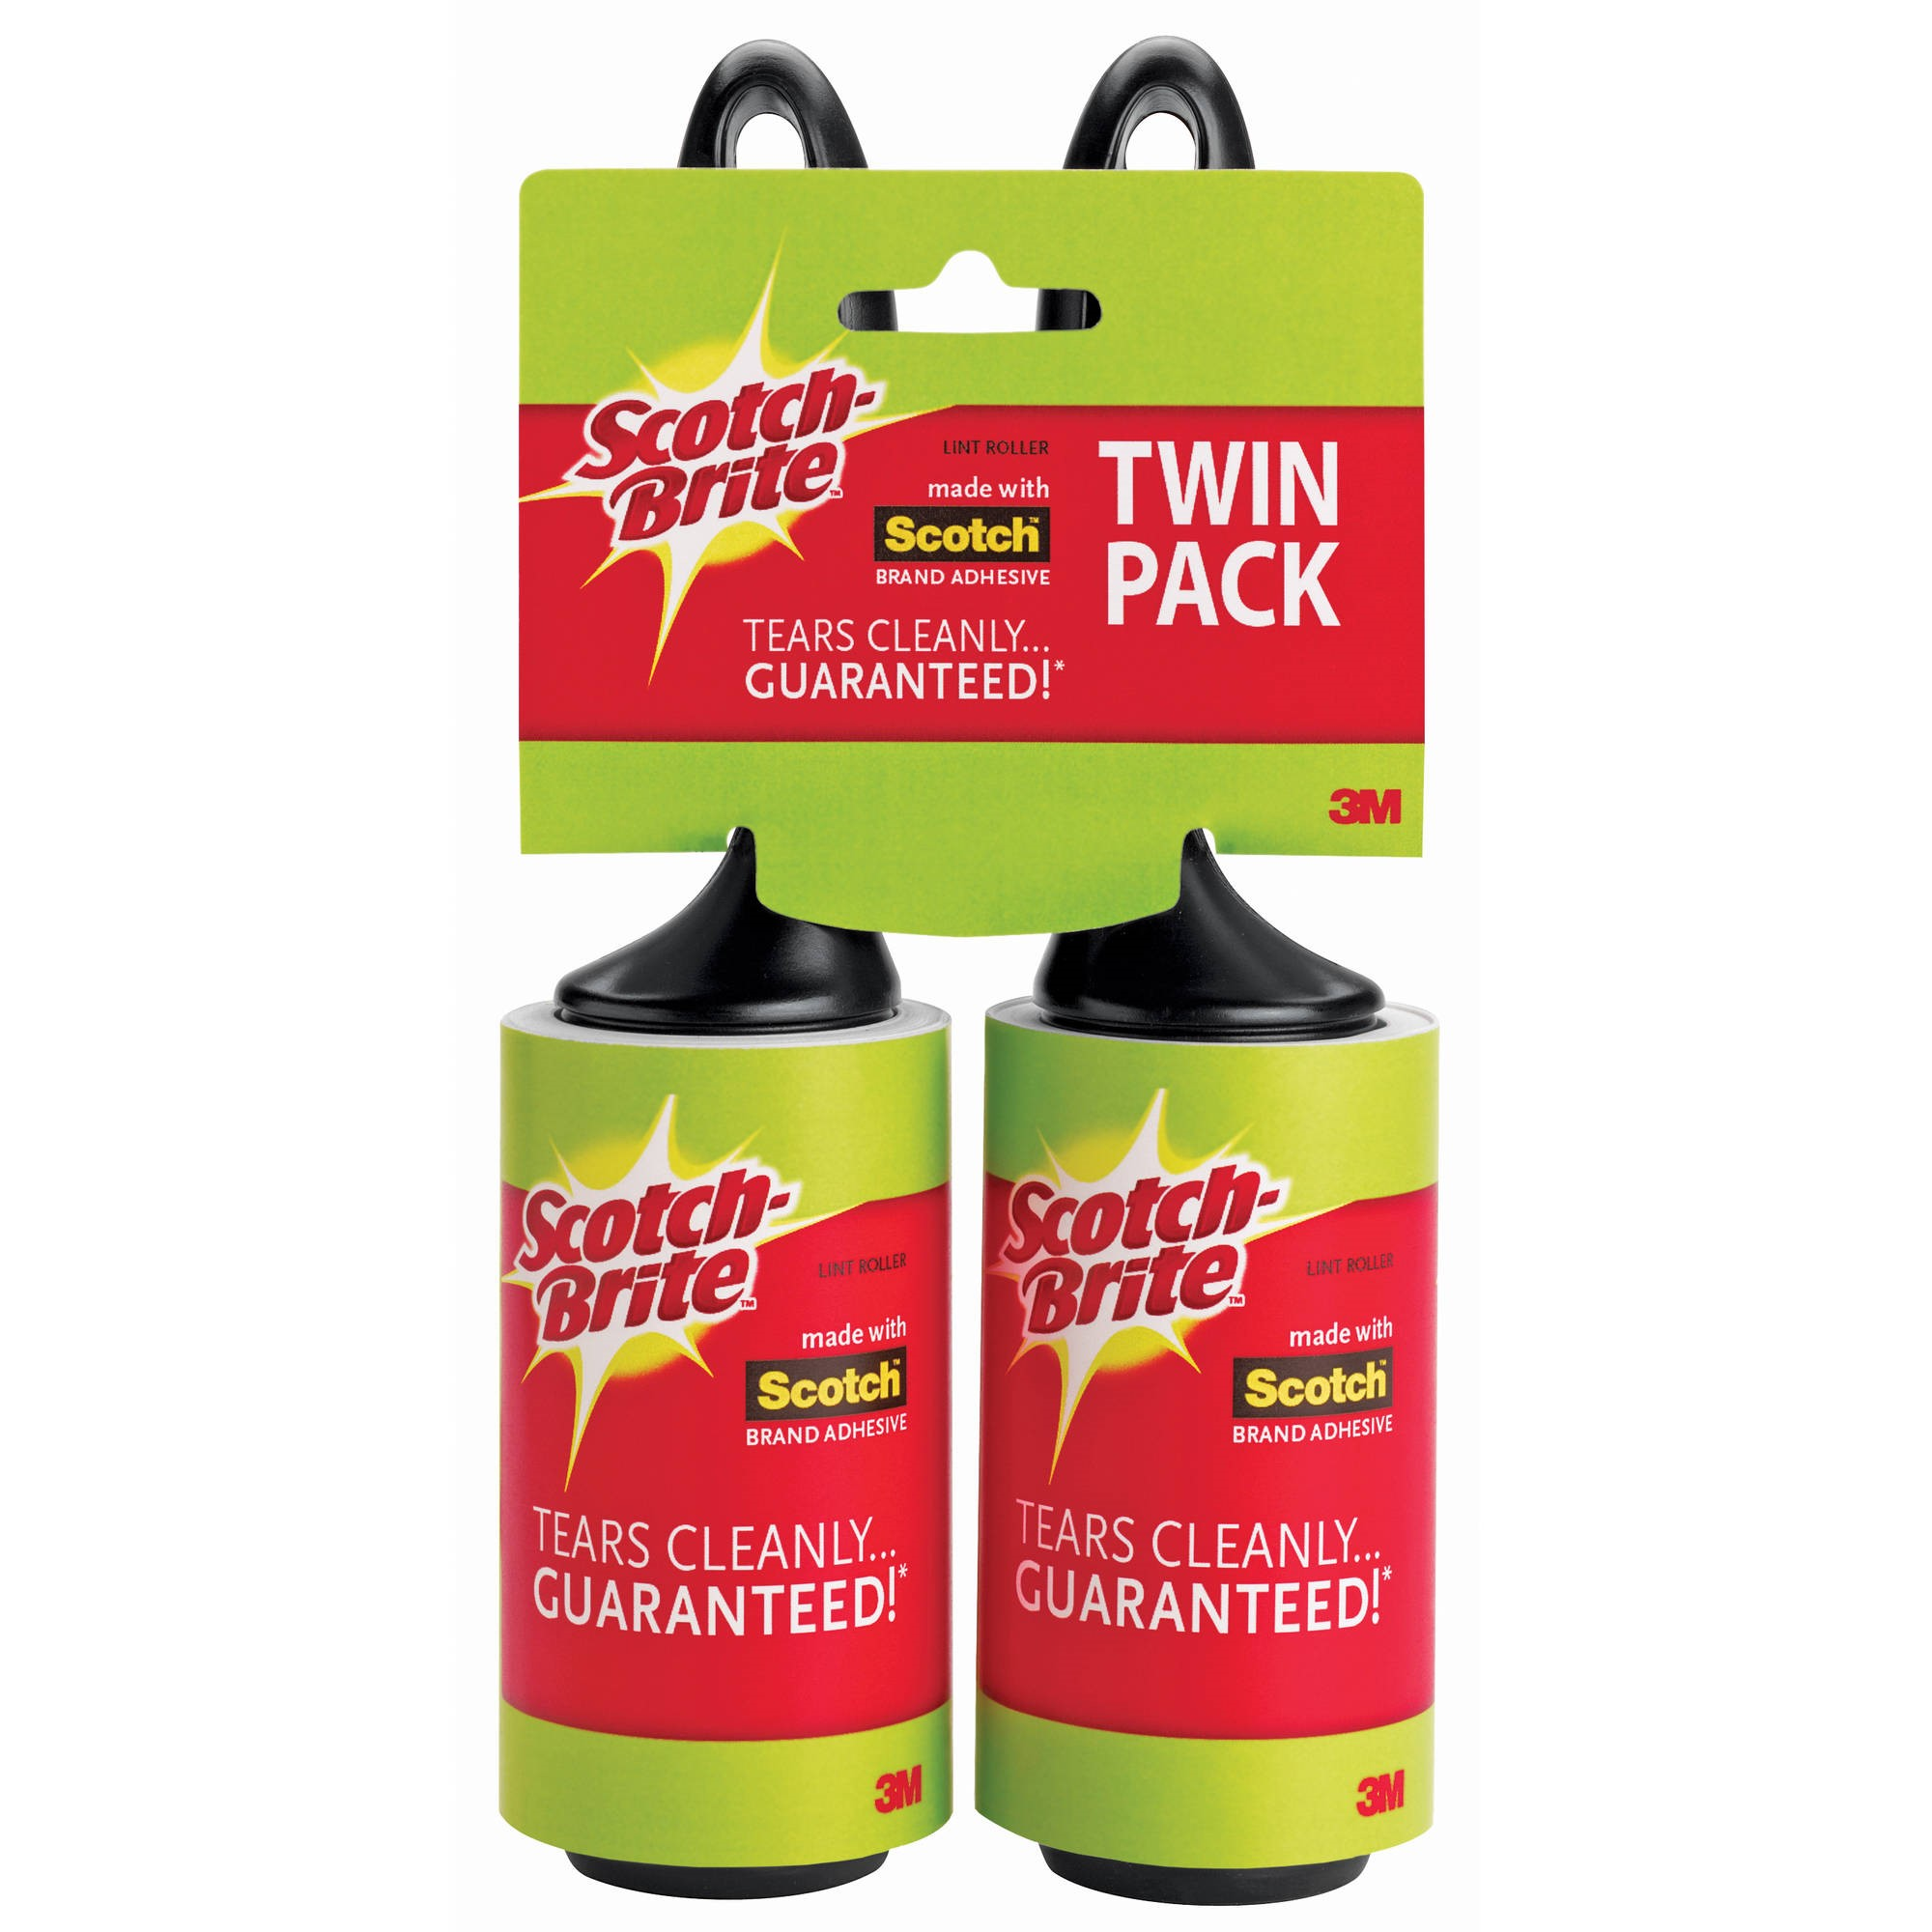 Scotch-Brite Lint Roller, 60 Sheets, 2 Count